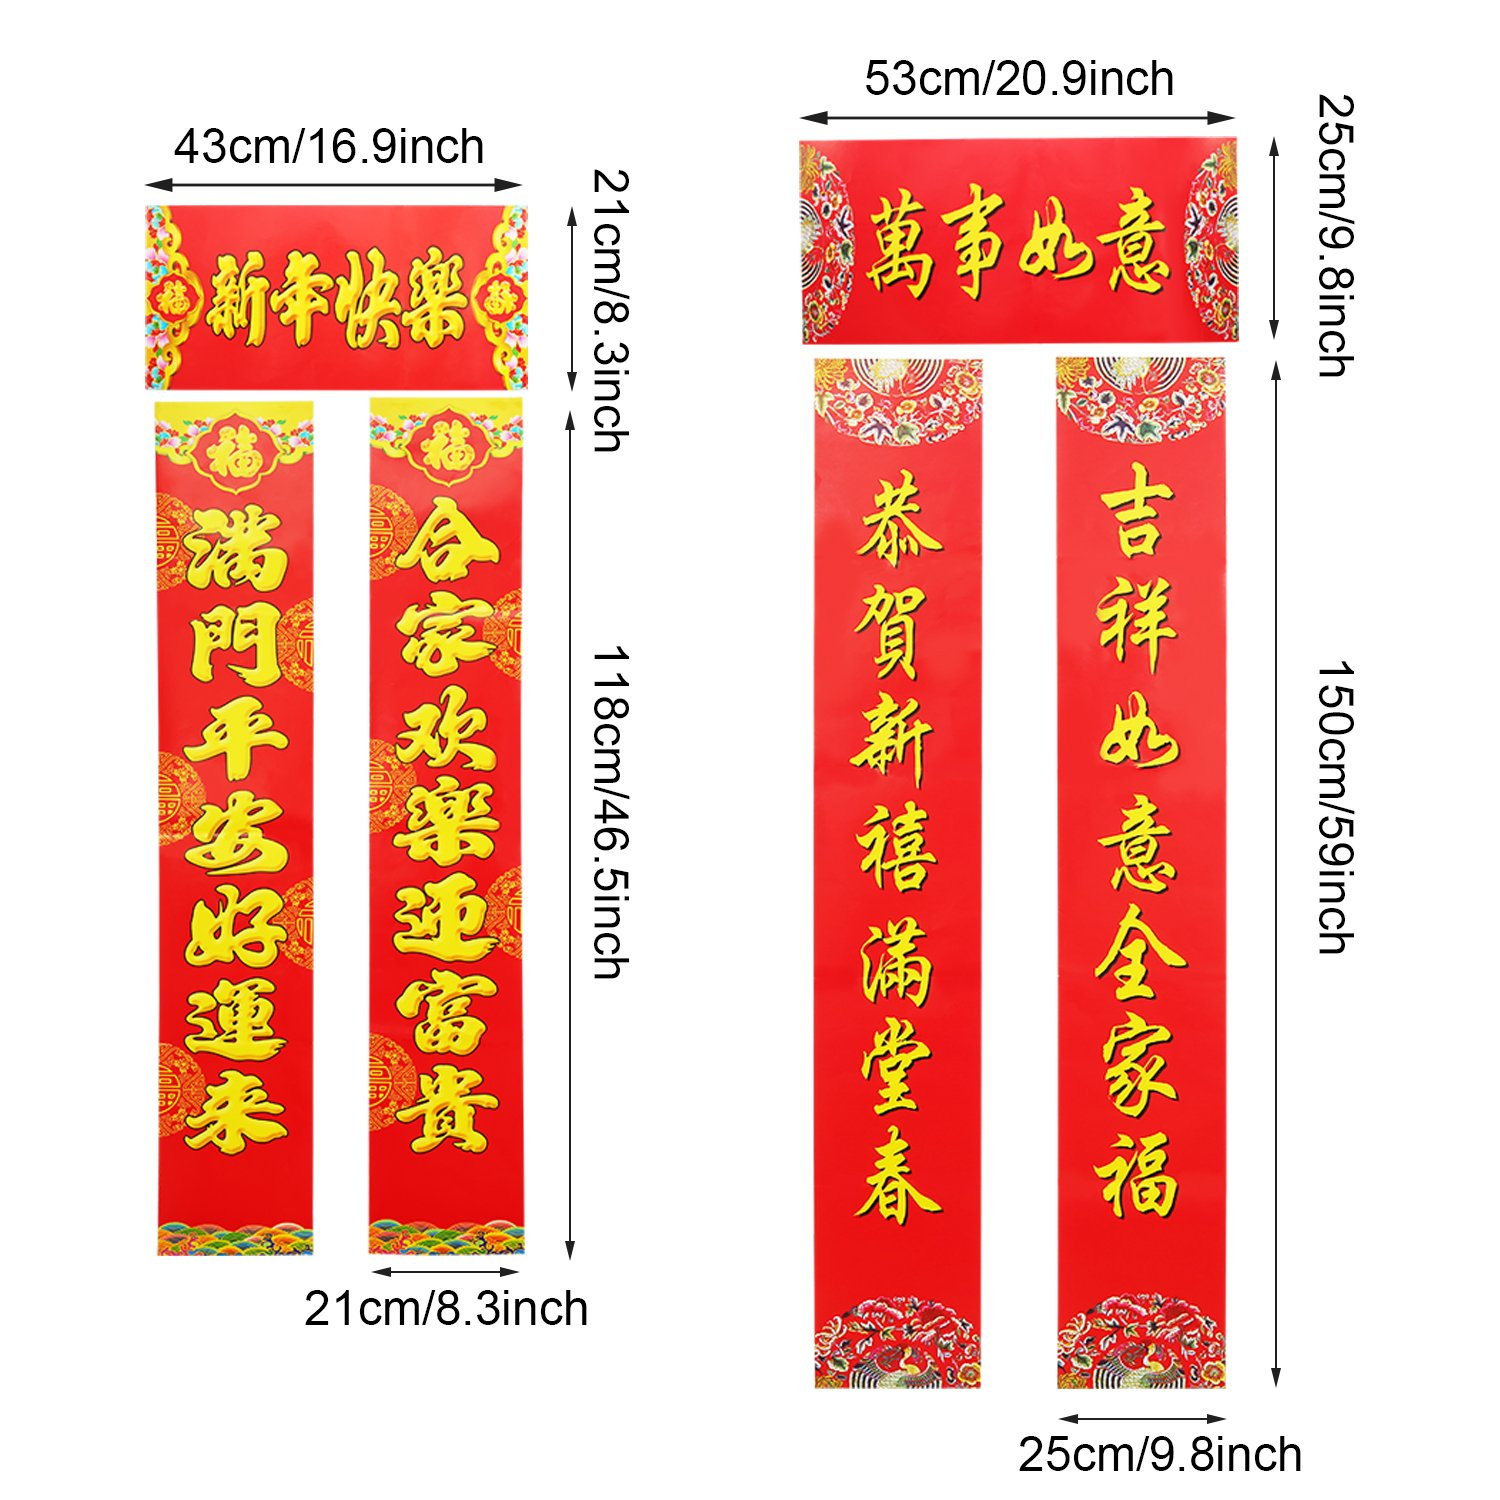 Mtlee Chinese Couplet Decorative Gift Kit for 2019 Chinese New Year Spring Festival, Includes Chun Lian, Fu Characters, Chinese Fu Stickers, Door Stickers, Red Envelopes, FU Bag (Set of 27 Pieces) by Mtlee (Image #6)